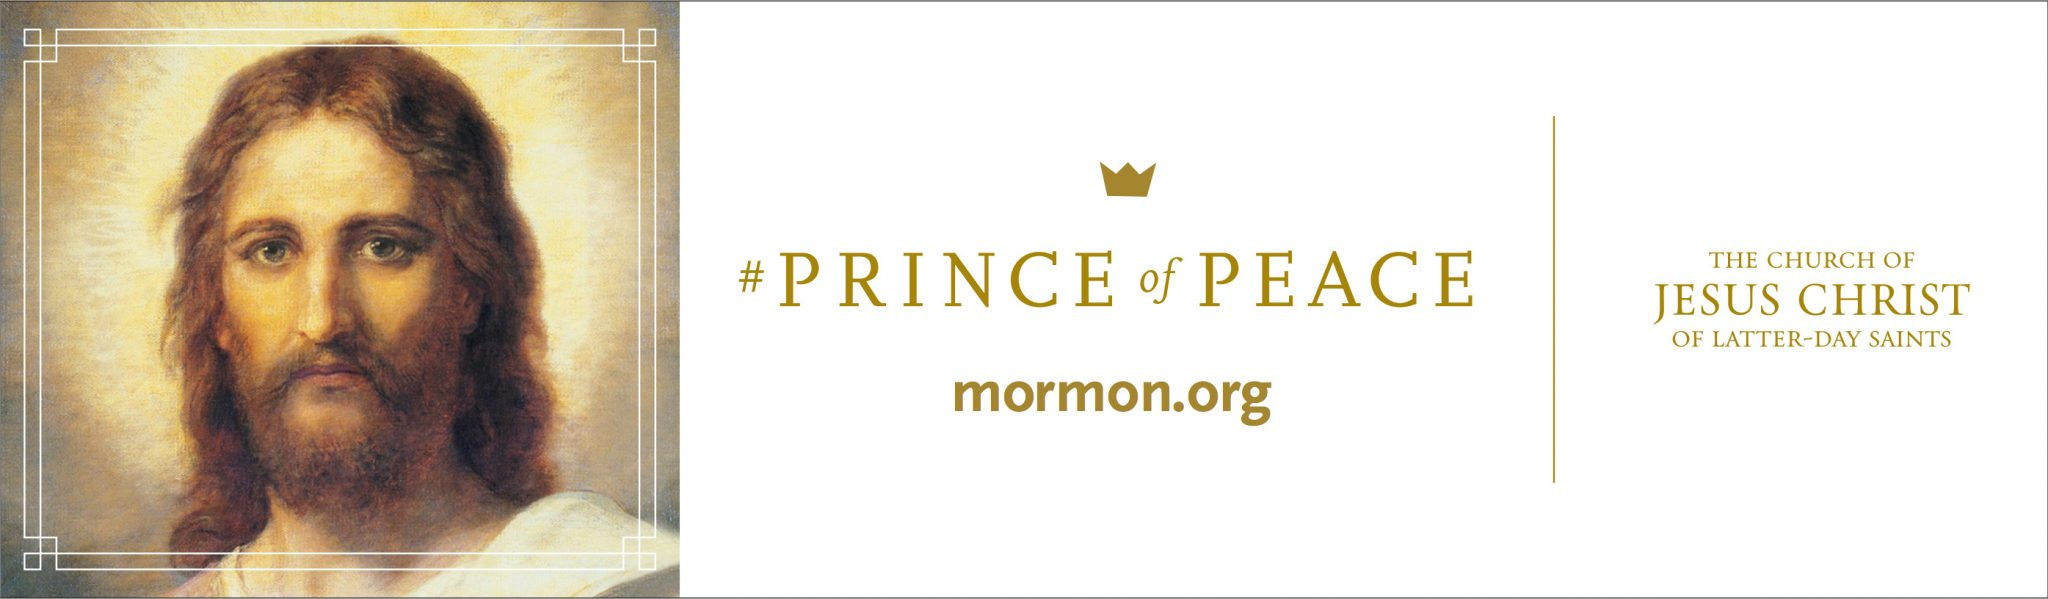 Easter 2017, PrinceofPeace, #PrinceofPeace, Prince of Peace, Mormon.org, Mormon church, church, faith, God, holy week,